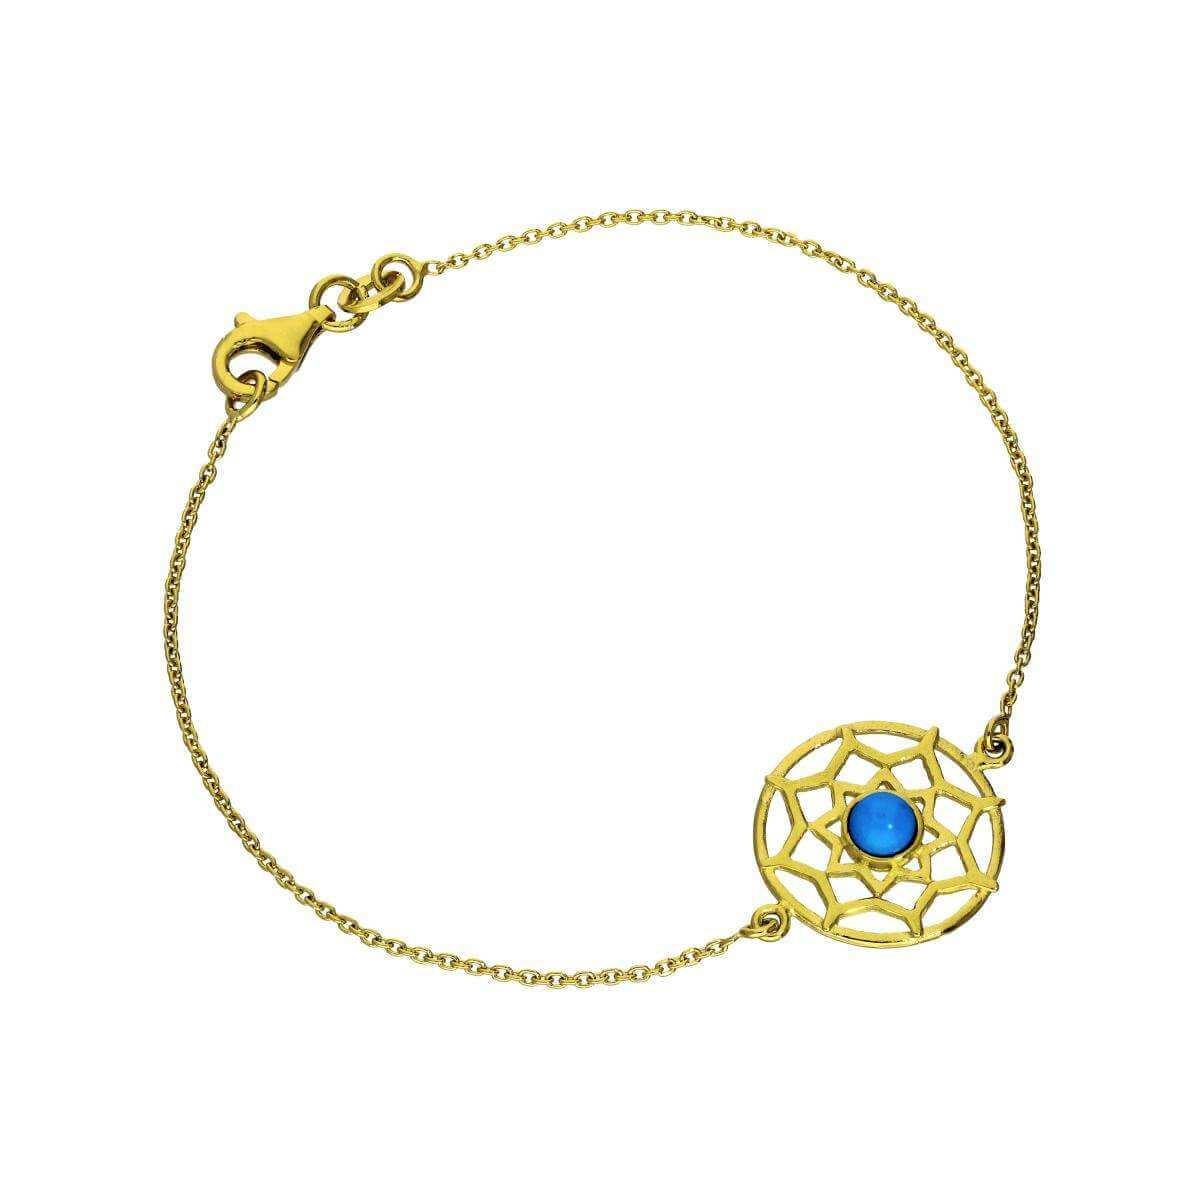 Gold Plated Sterling Silver & Blue Enamel Dreamcatcher Bracelet 7 Inches